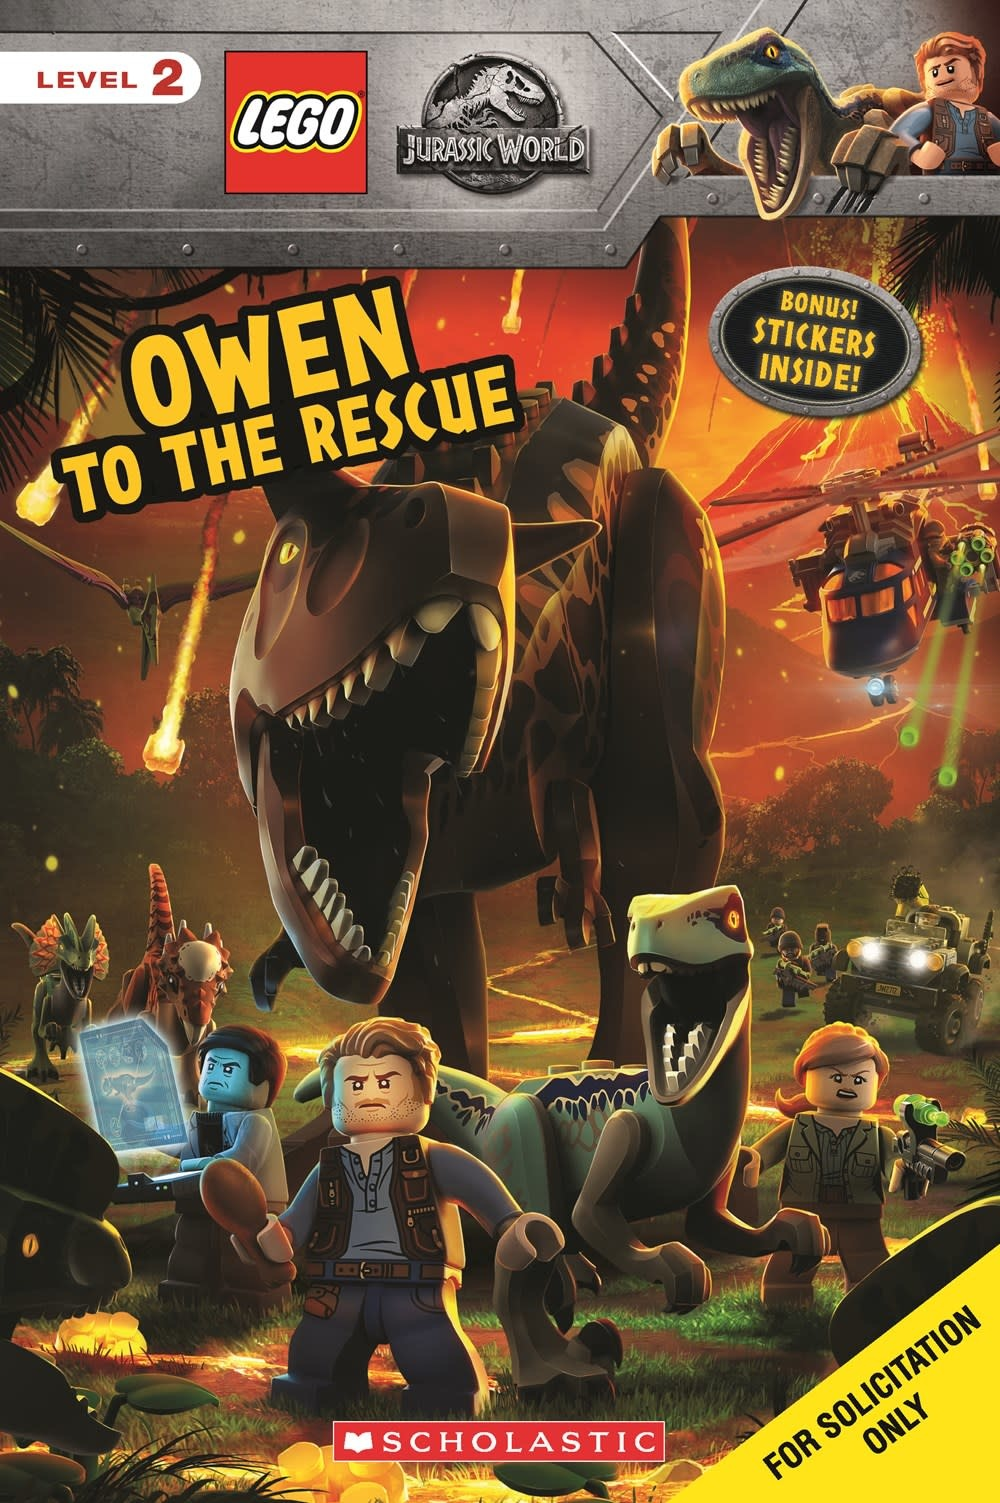 Scholastic Inc. LEGO Jurassic World: Owen to the Rescue (Scholastic, Lvl 2)